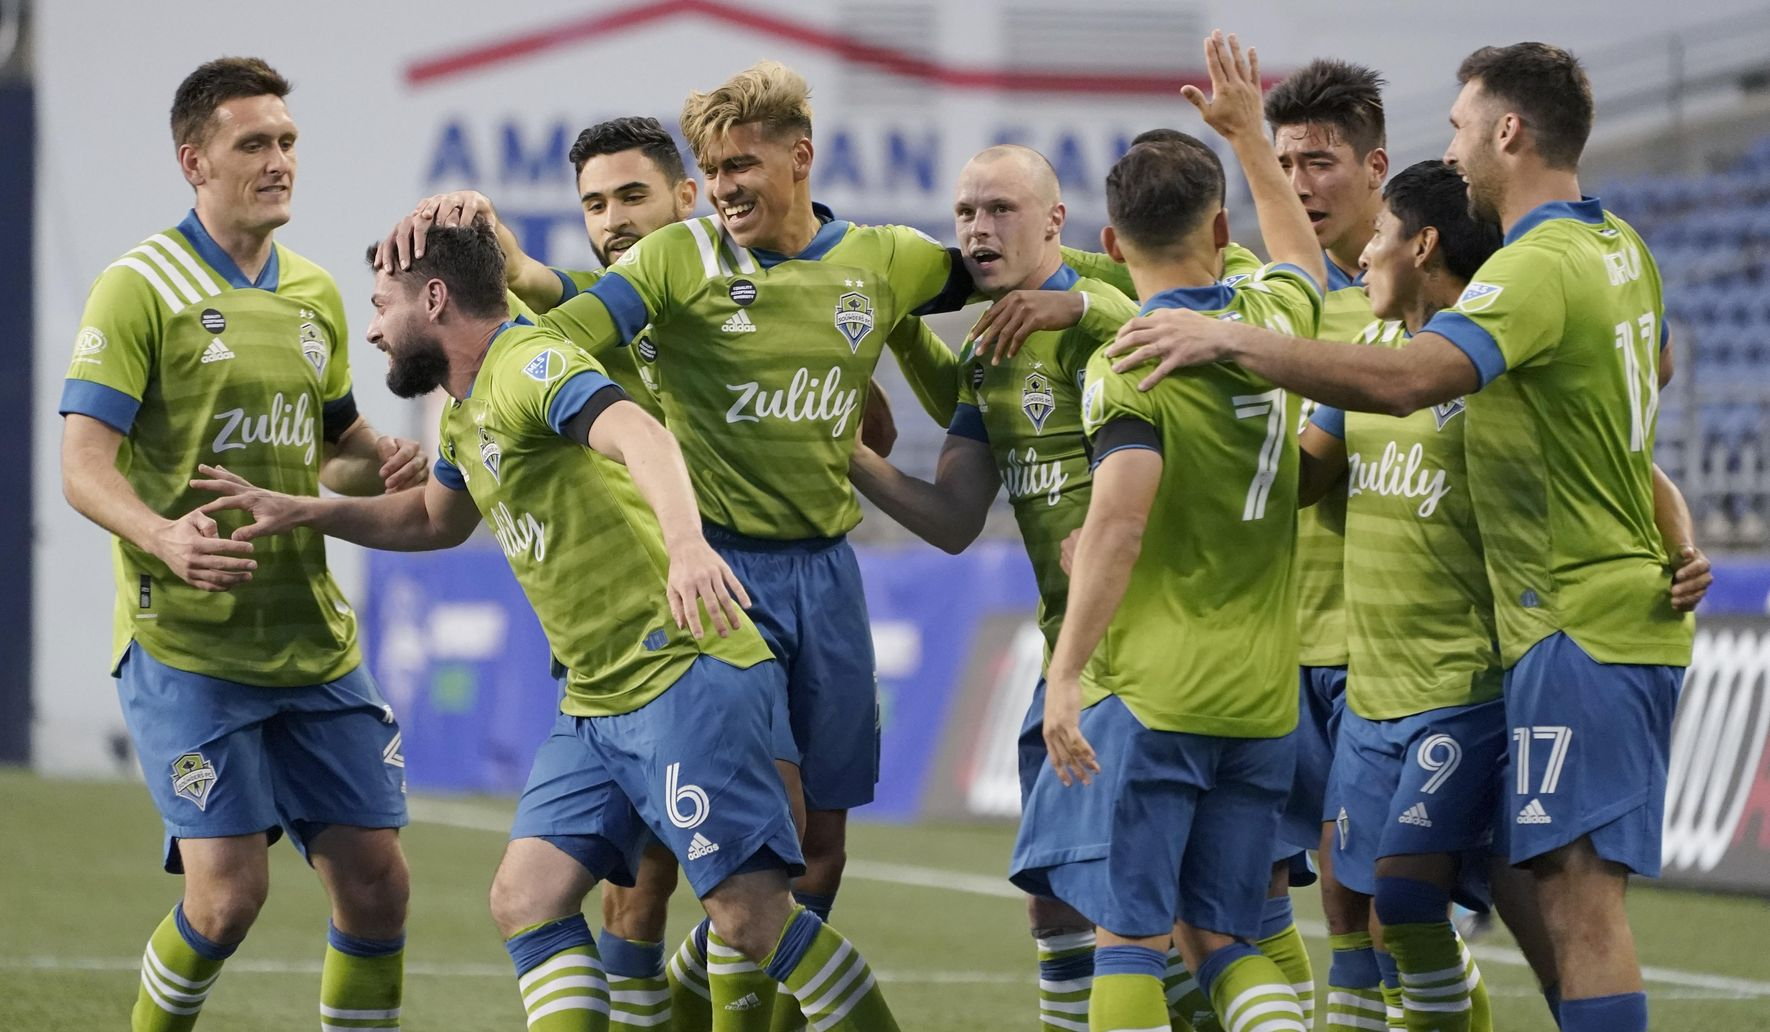 Mls_minnesota_united_sounders_soccer_46085_c0-217-5180-3237_s1770x1032